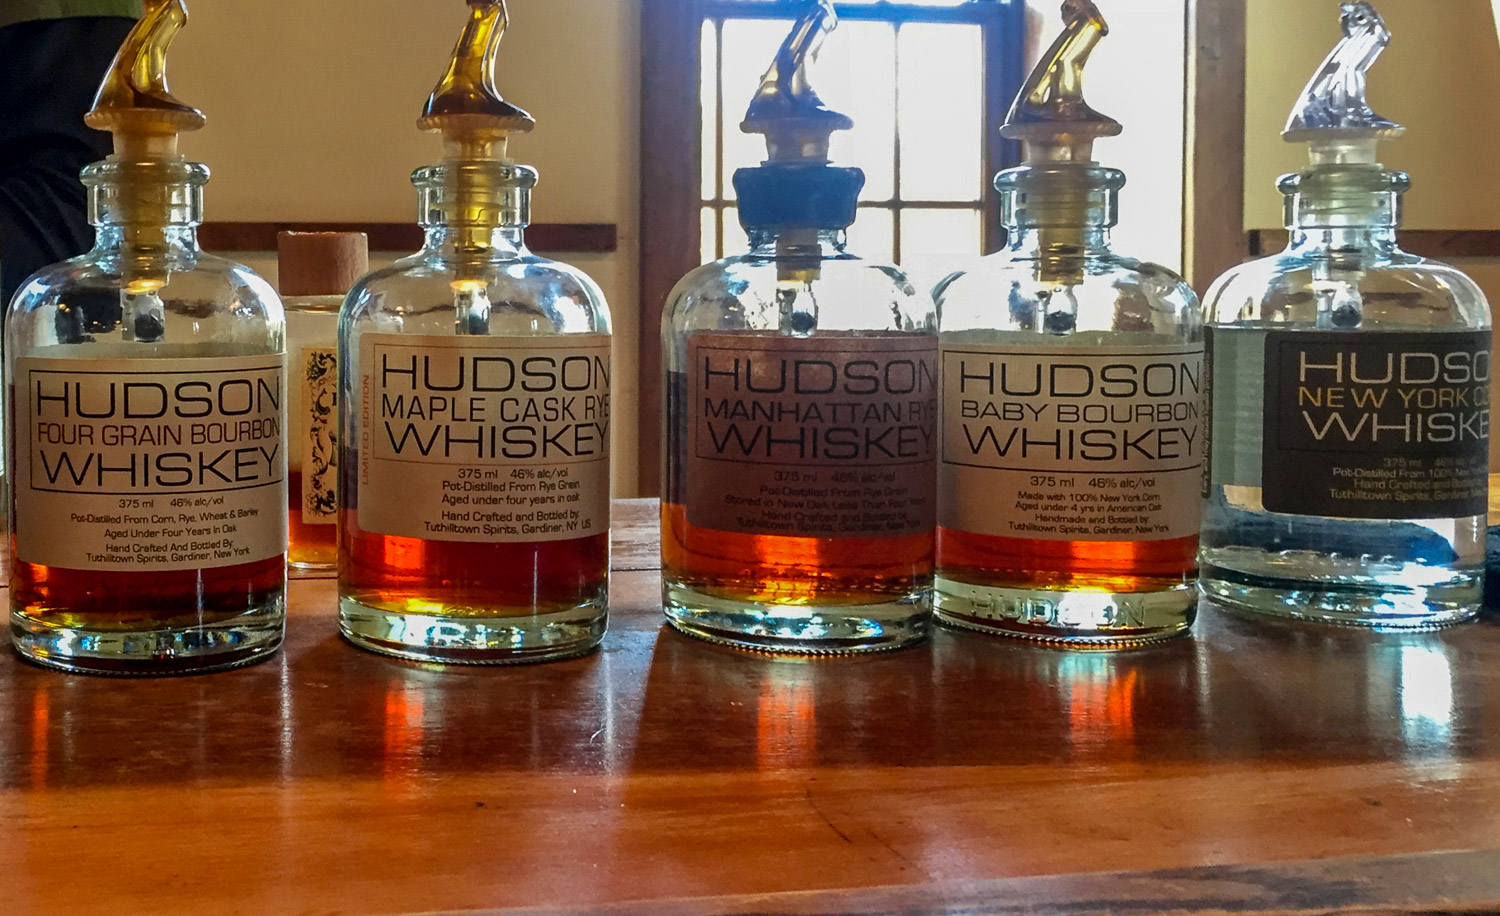 Some favorite whiskies, including ryes, from Tuthilltown Distillery in New York (Photo: Lyn Farmer)